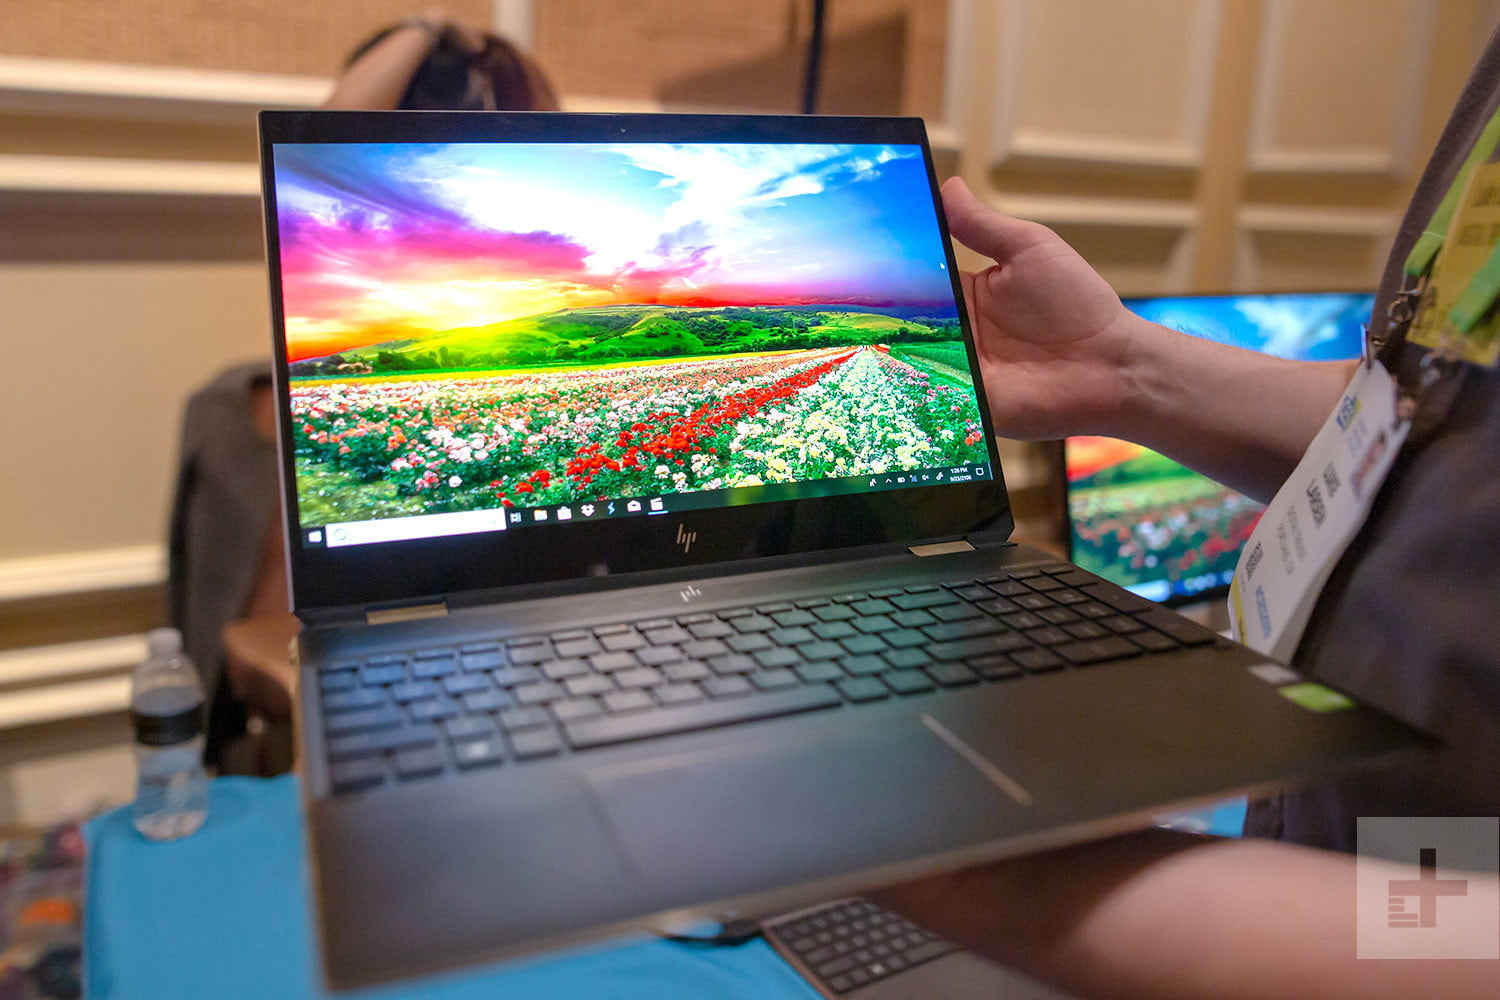 HP Spectre x360 15 review